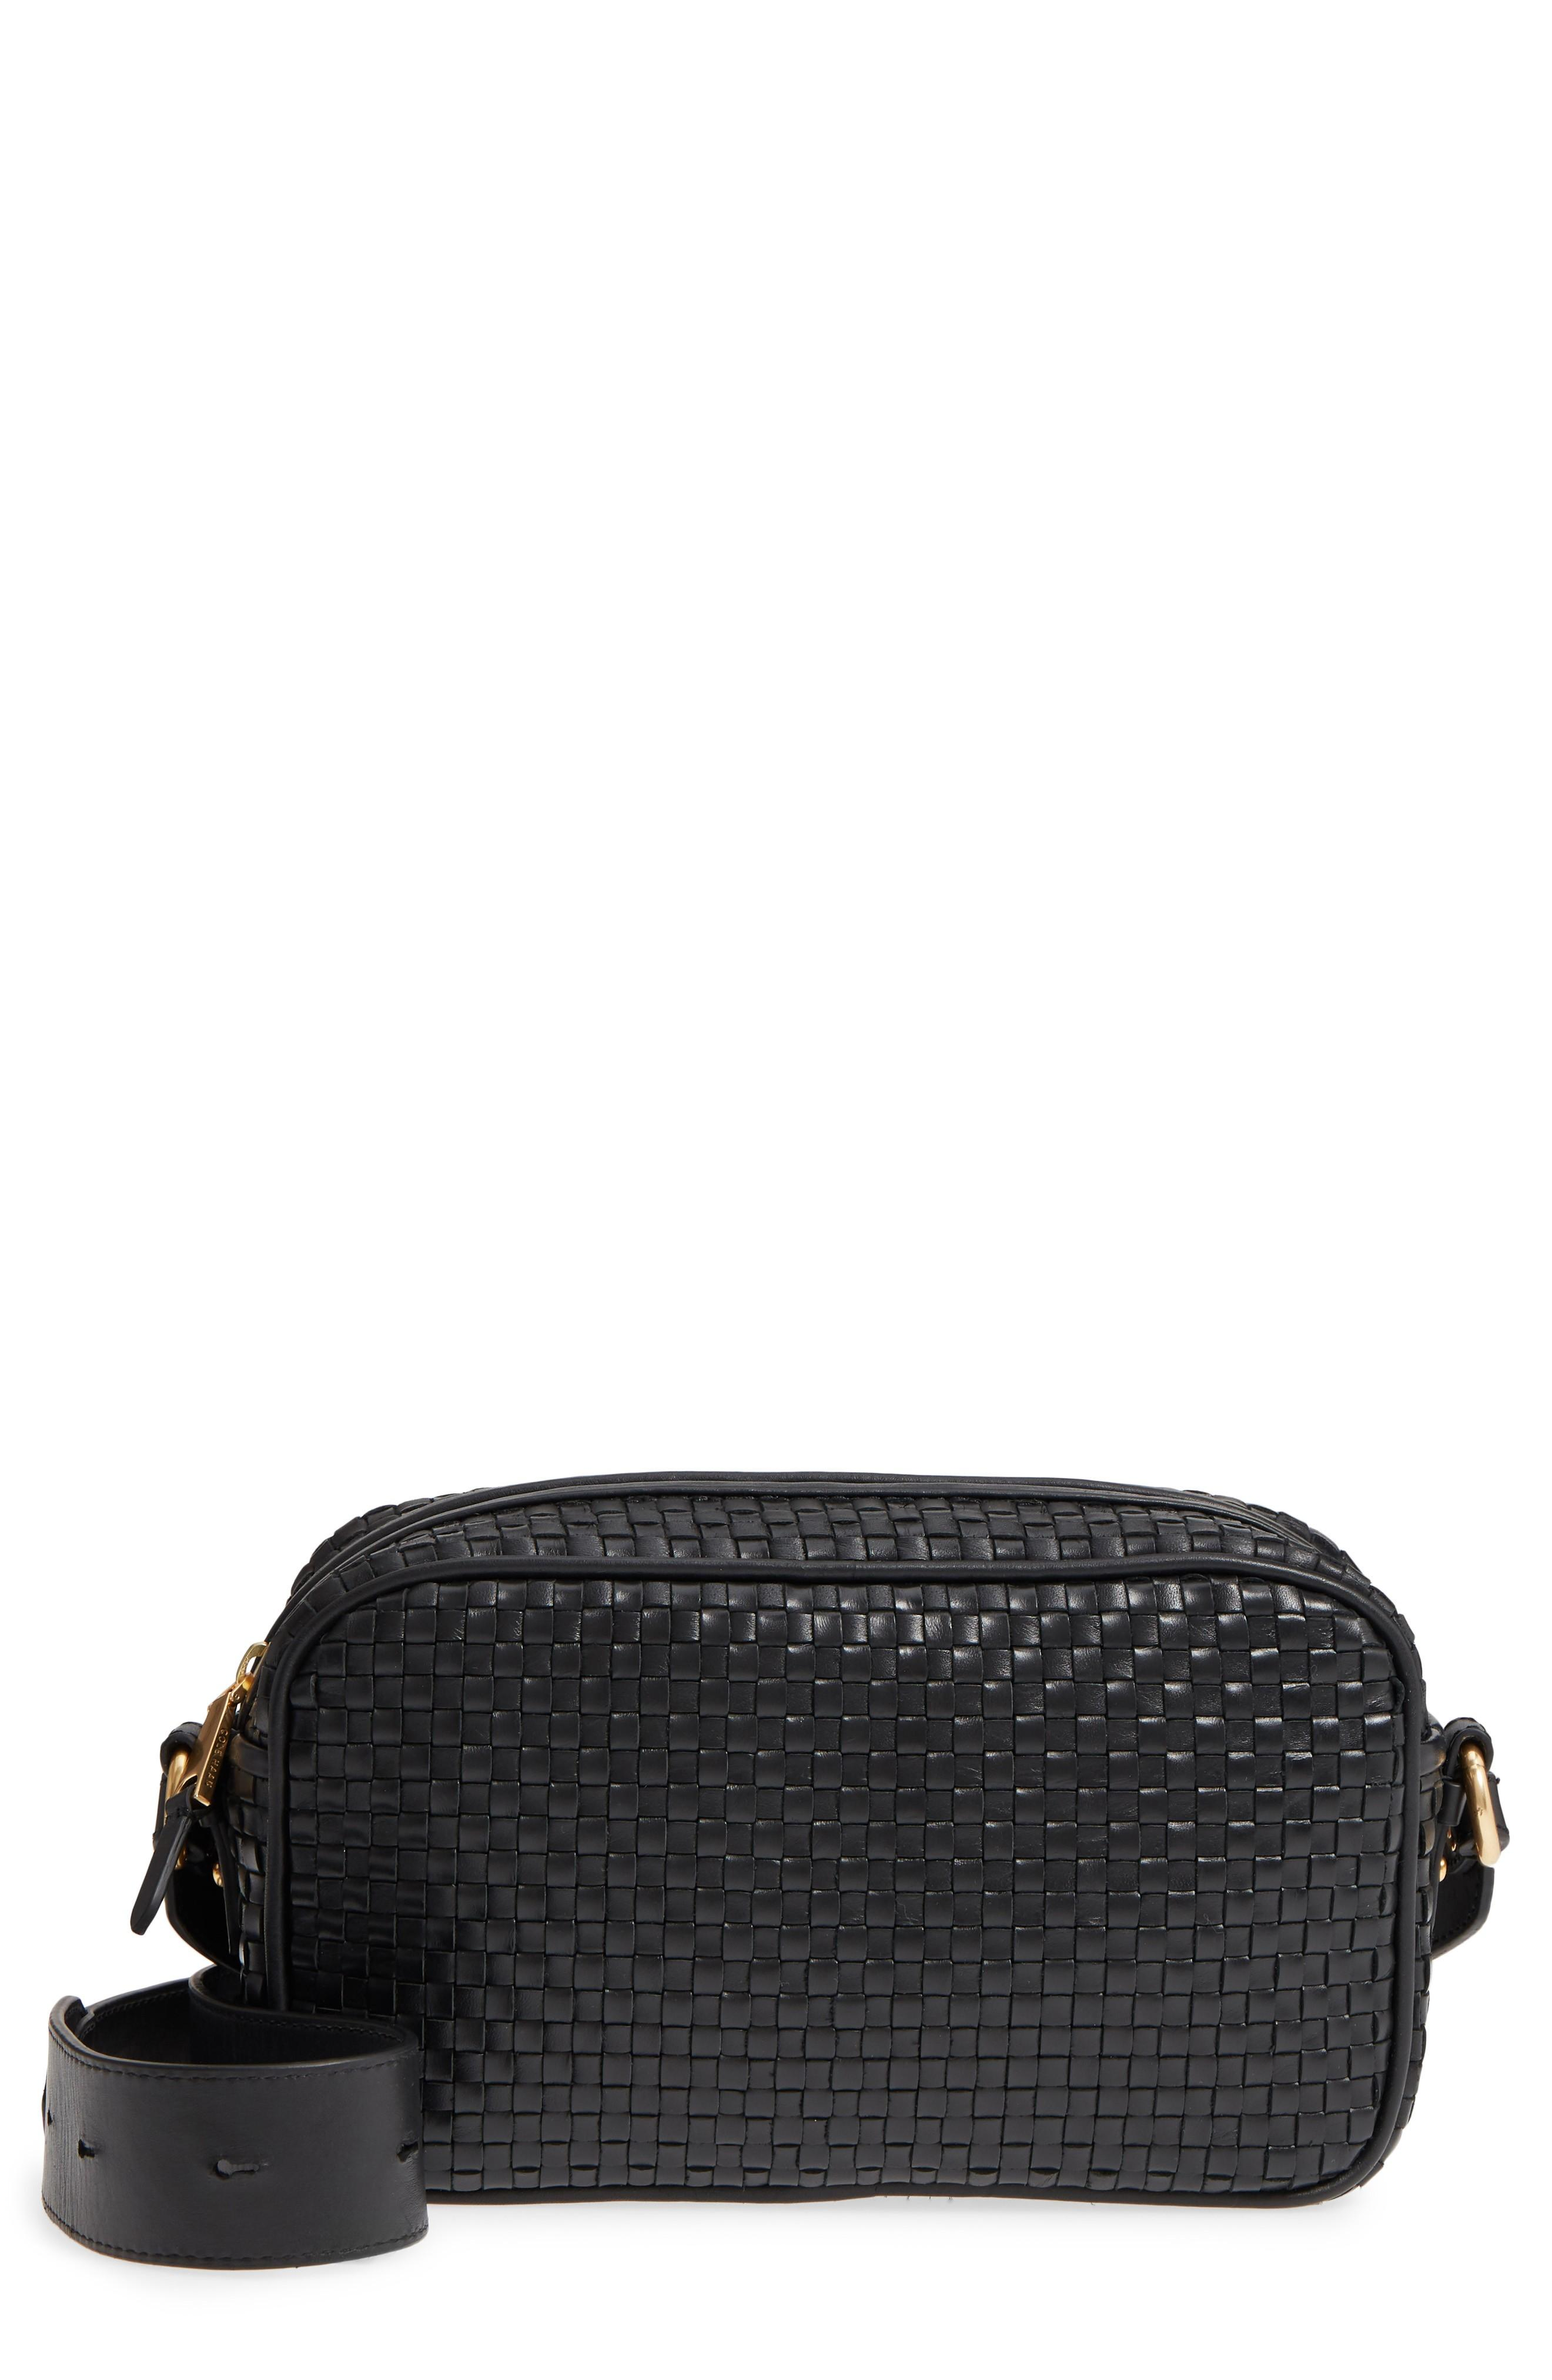 eb34a4d0f3 Cole Haan Zoe Rfid Woven Leather Camera Bag - Black | ModeSens